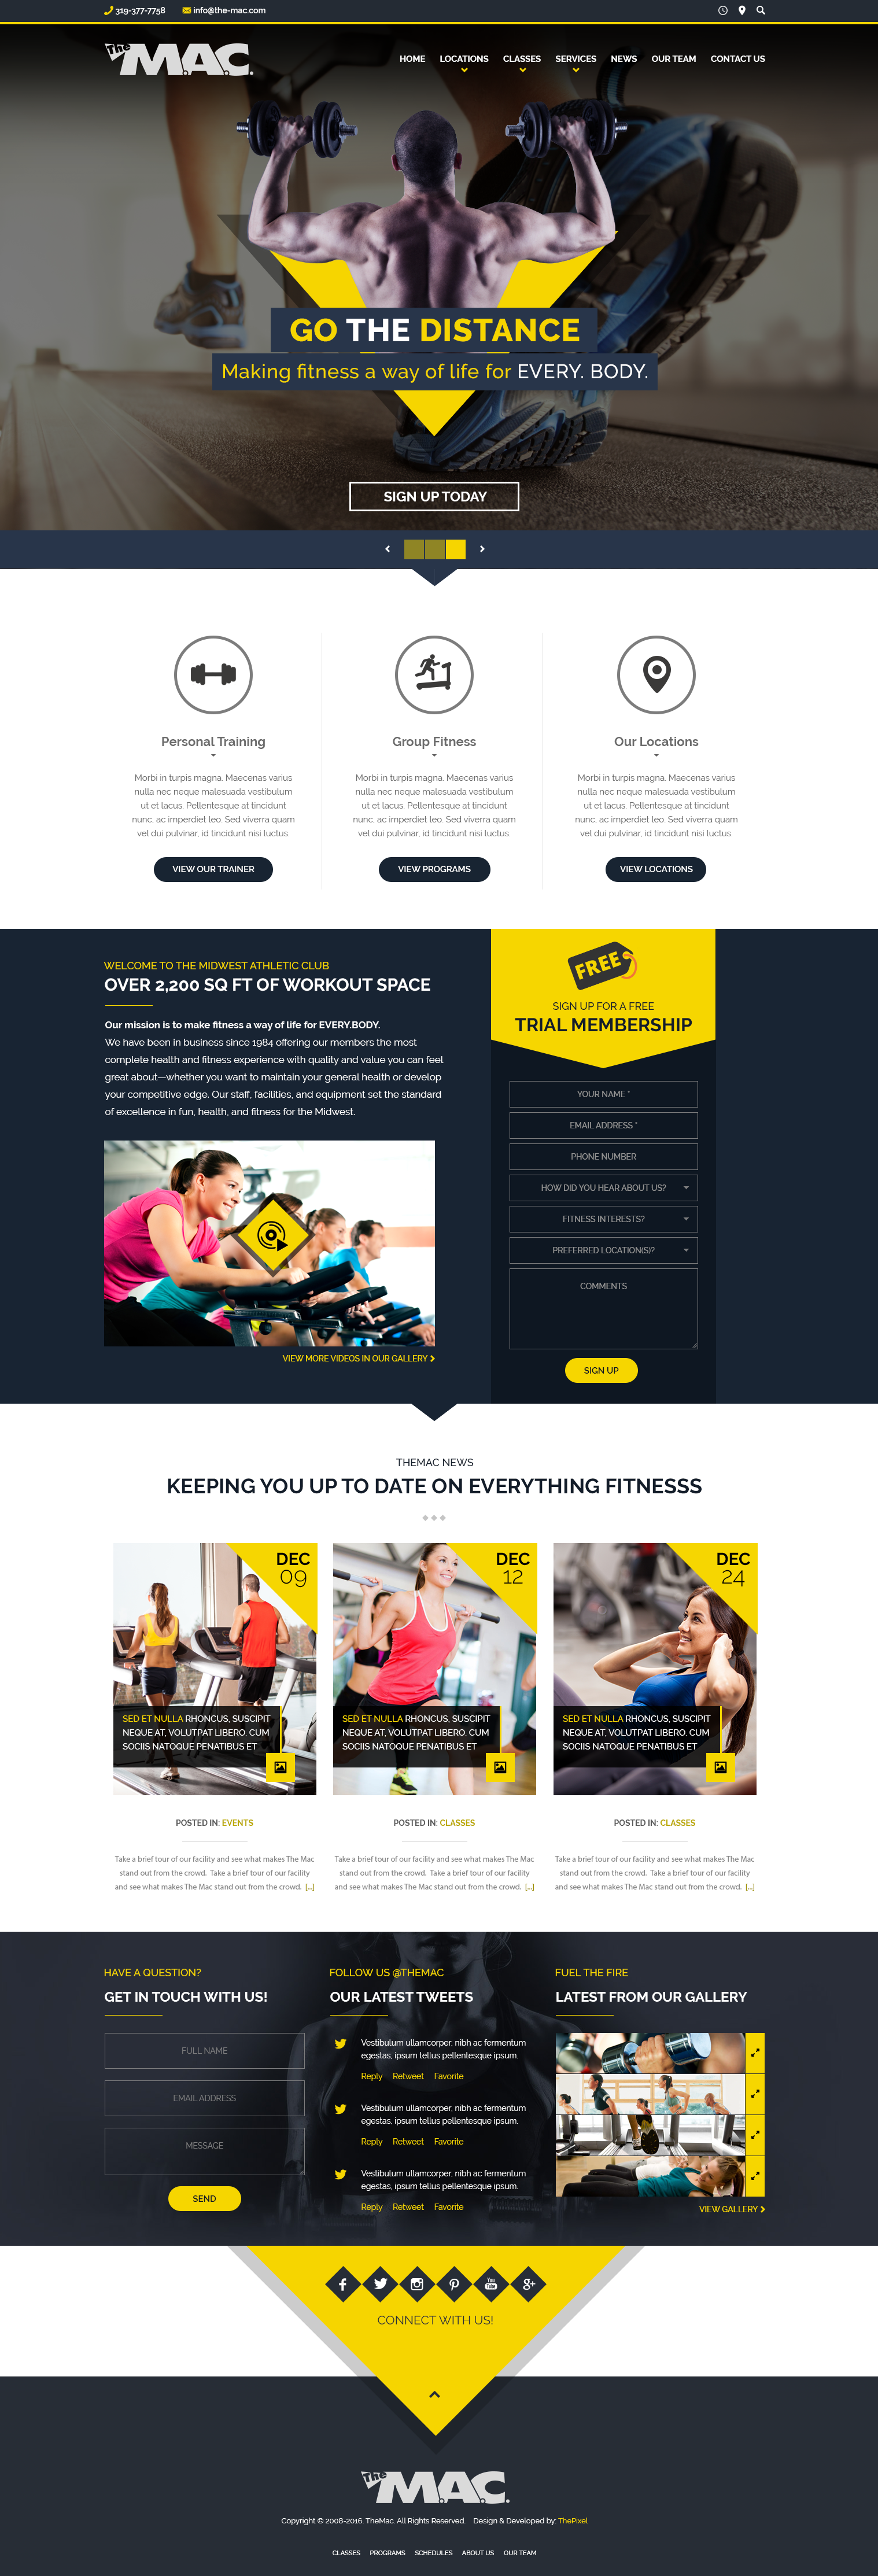 TheMac_Fitness_Gym_Website_Design